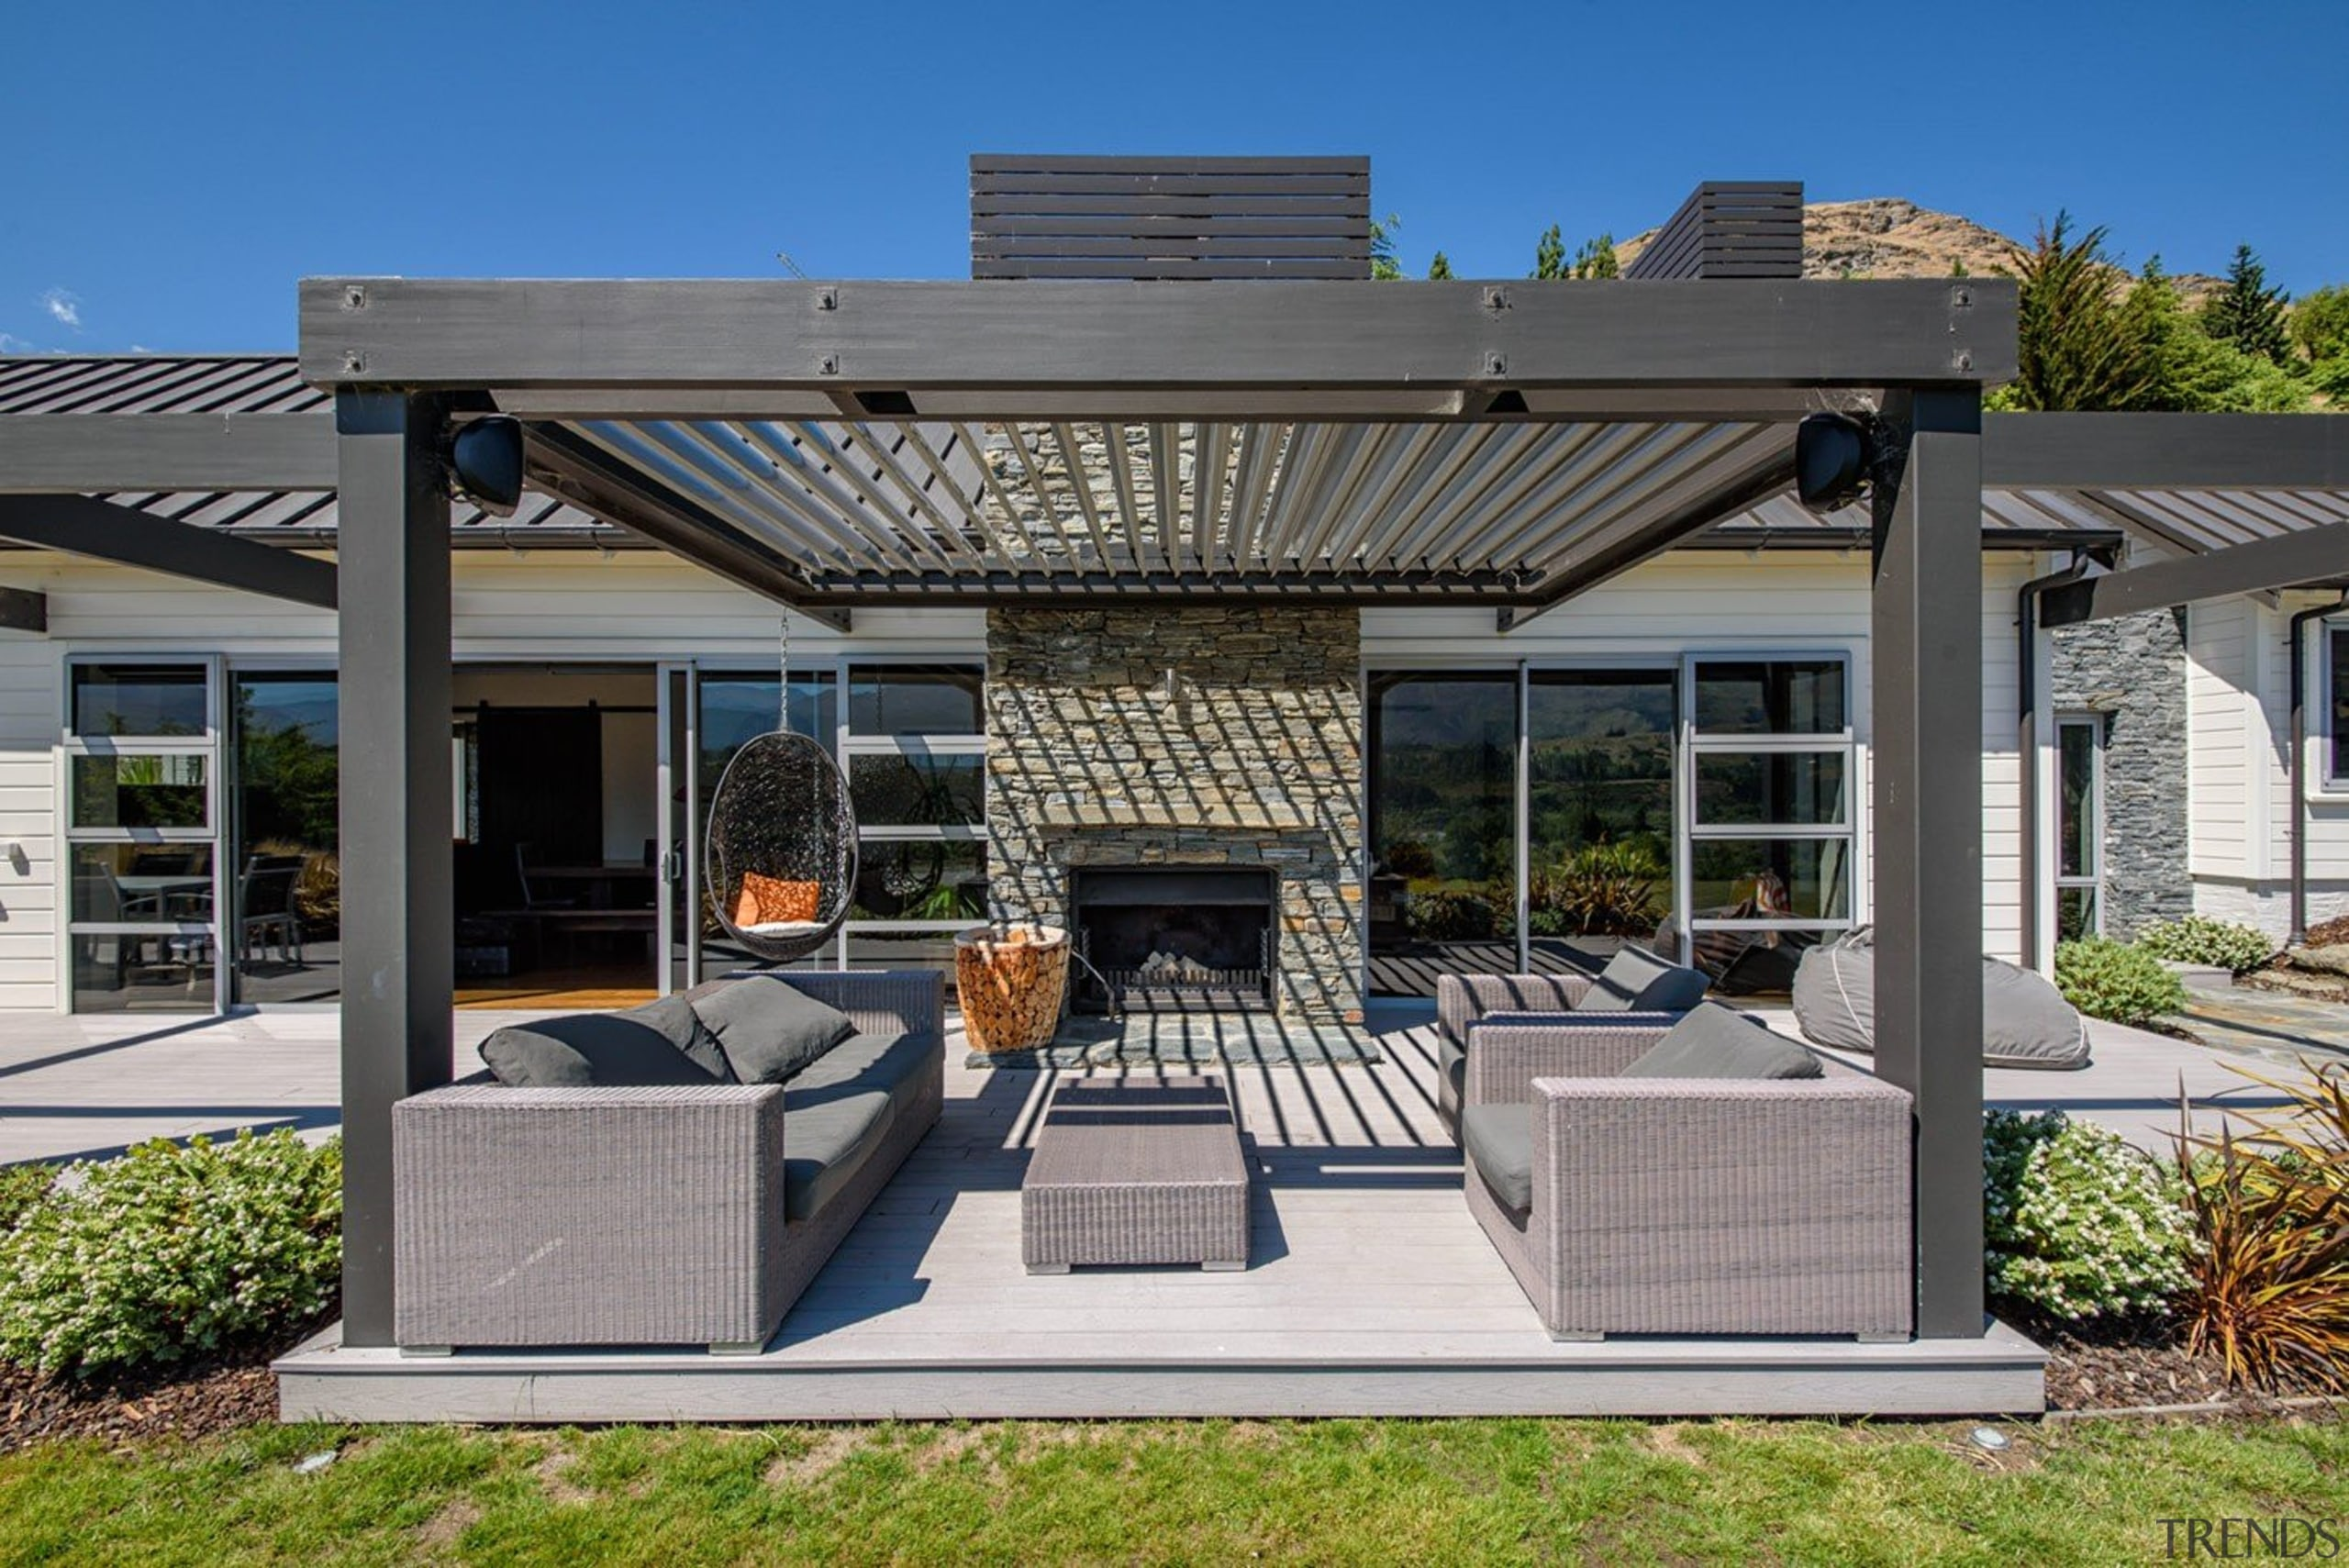 The word 'relax' comes to mind with this outdoor structure, real estate, gray